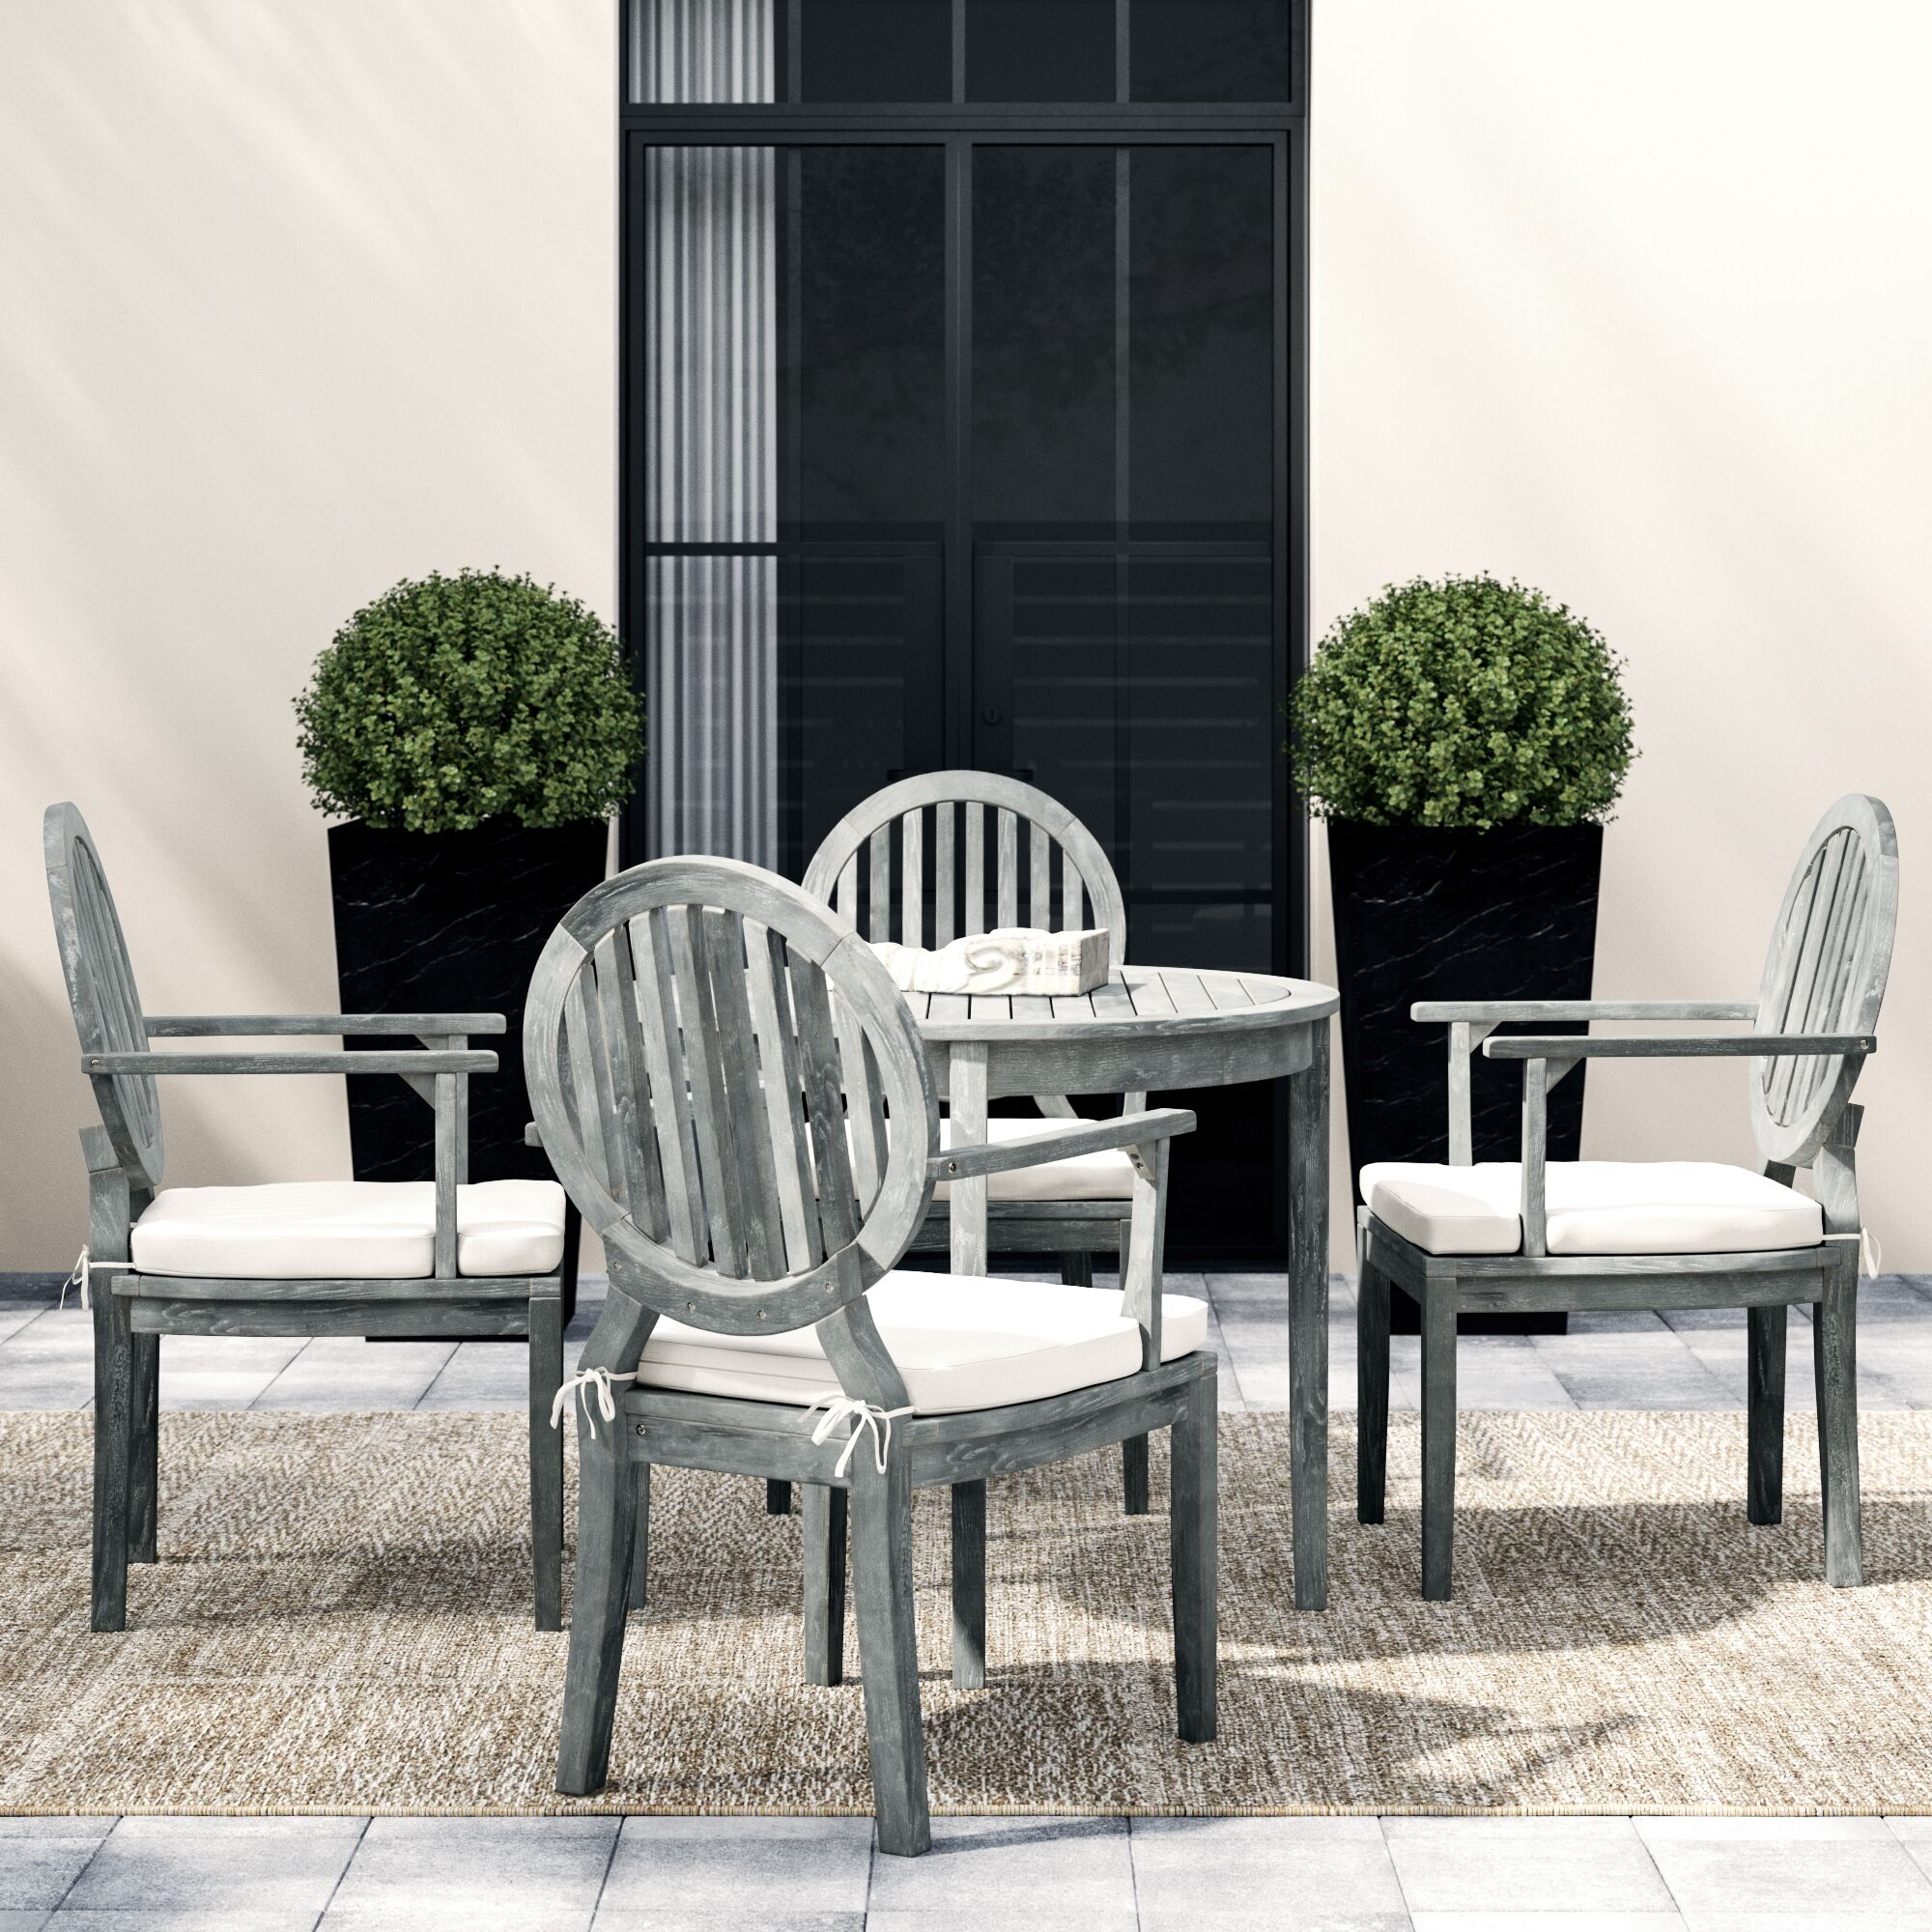 Chilhowee Chino 5 Piece Dining Set with Cushions Color: Ash Gray